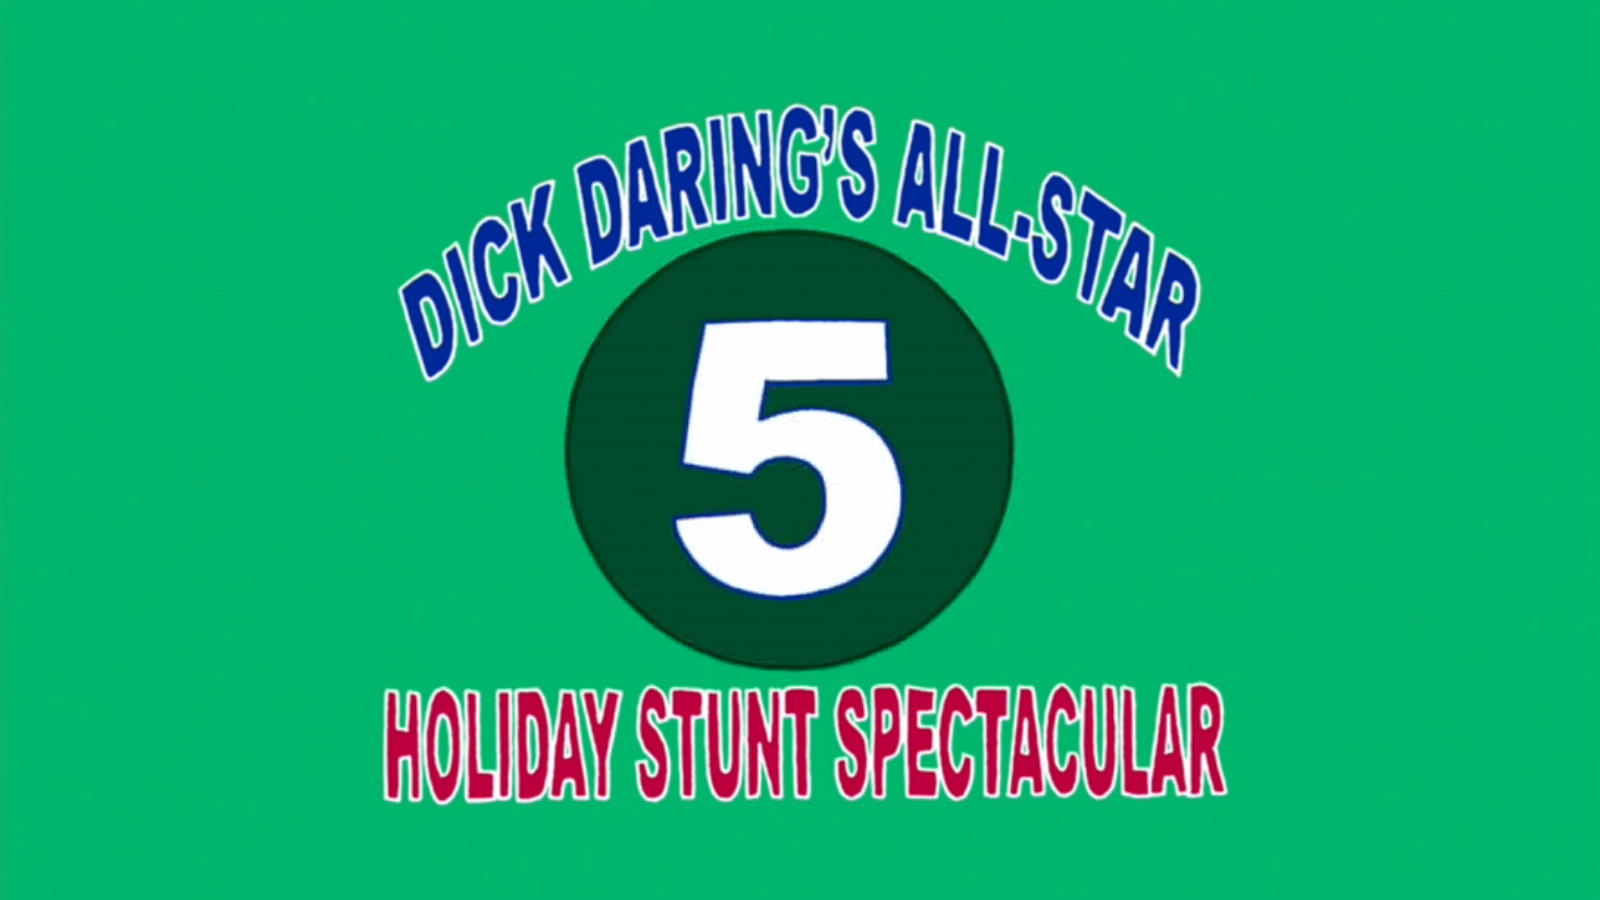 Dick Daring's All-Star Holiday Stunt Spectacular 5